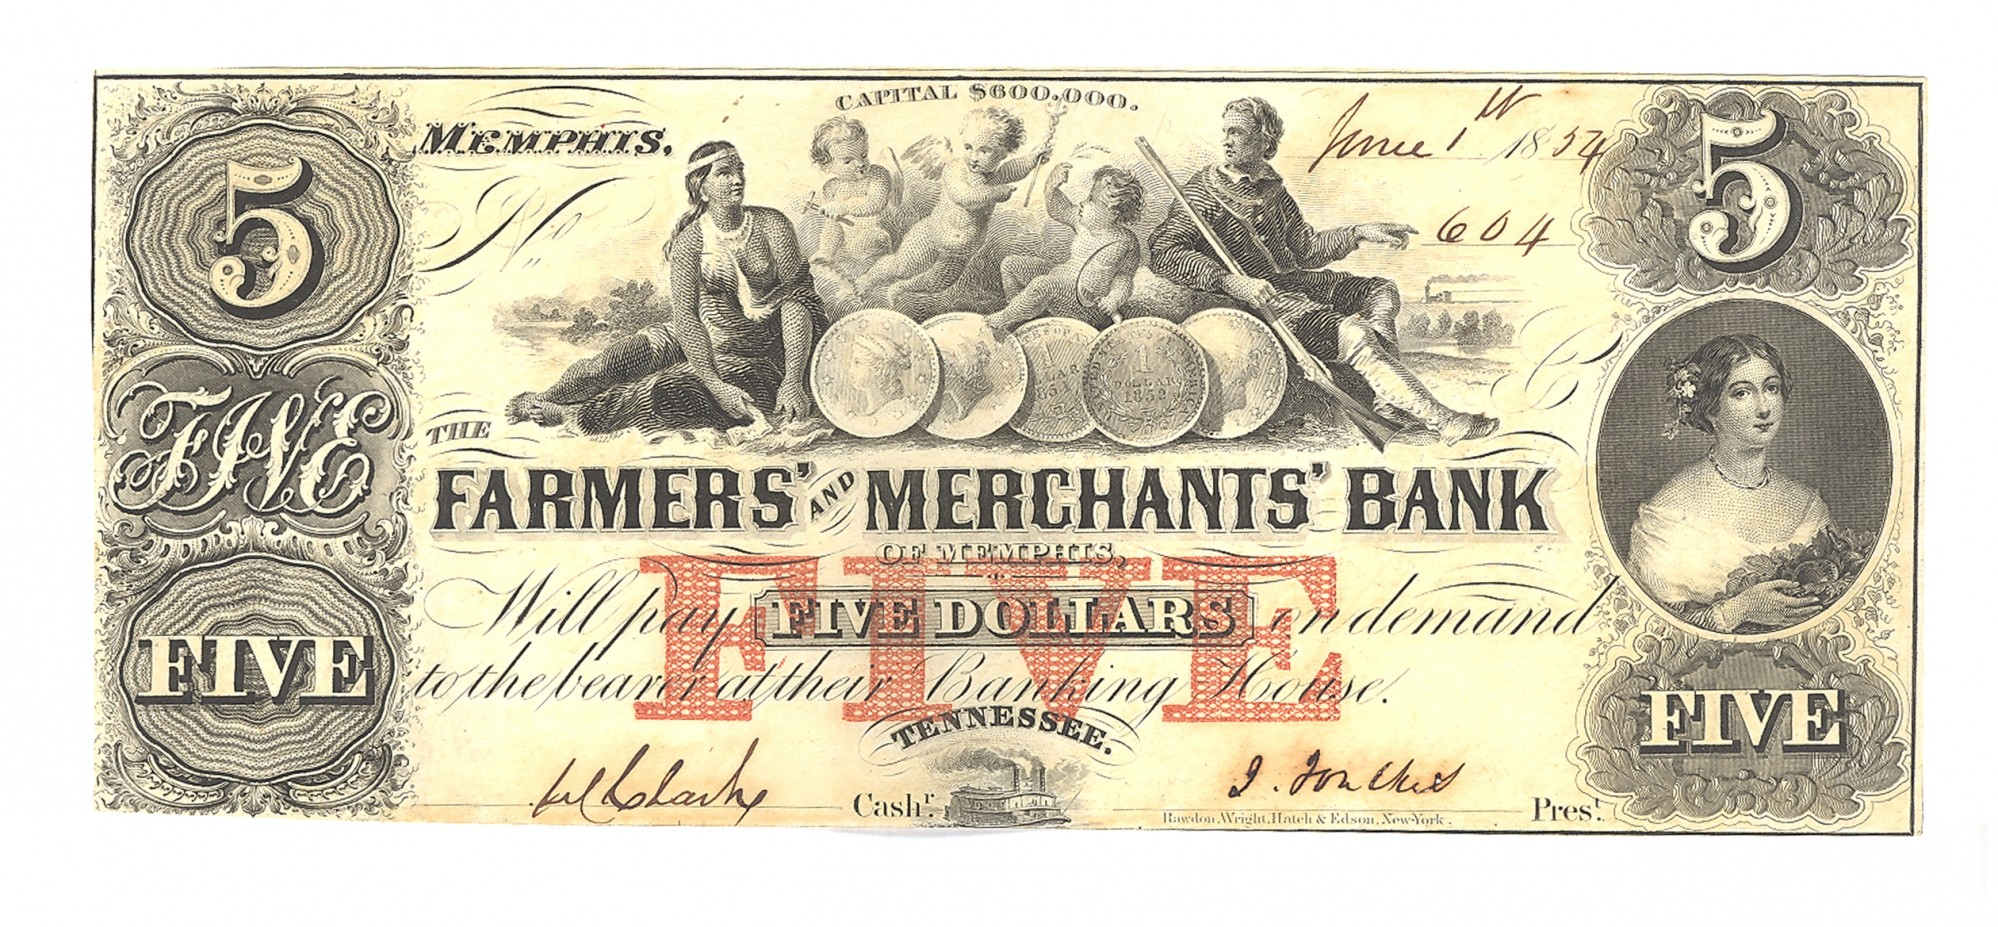 FARMERS AND MERCHANTS BANK, MEMPHIS, TENNESSEE $5 NOTE